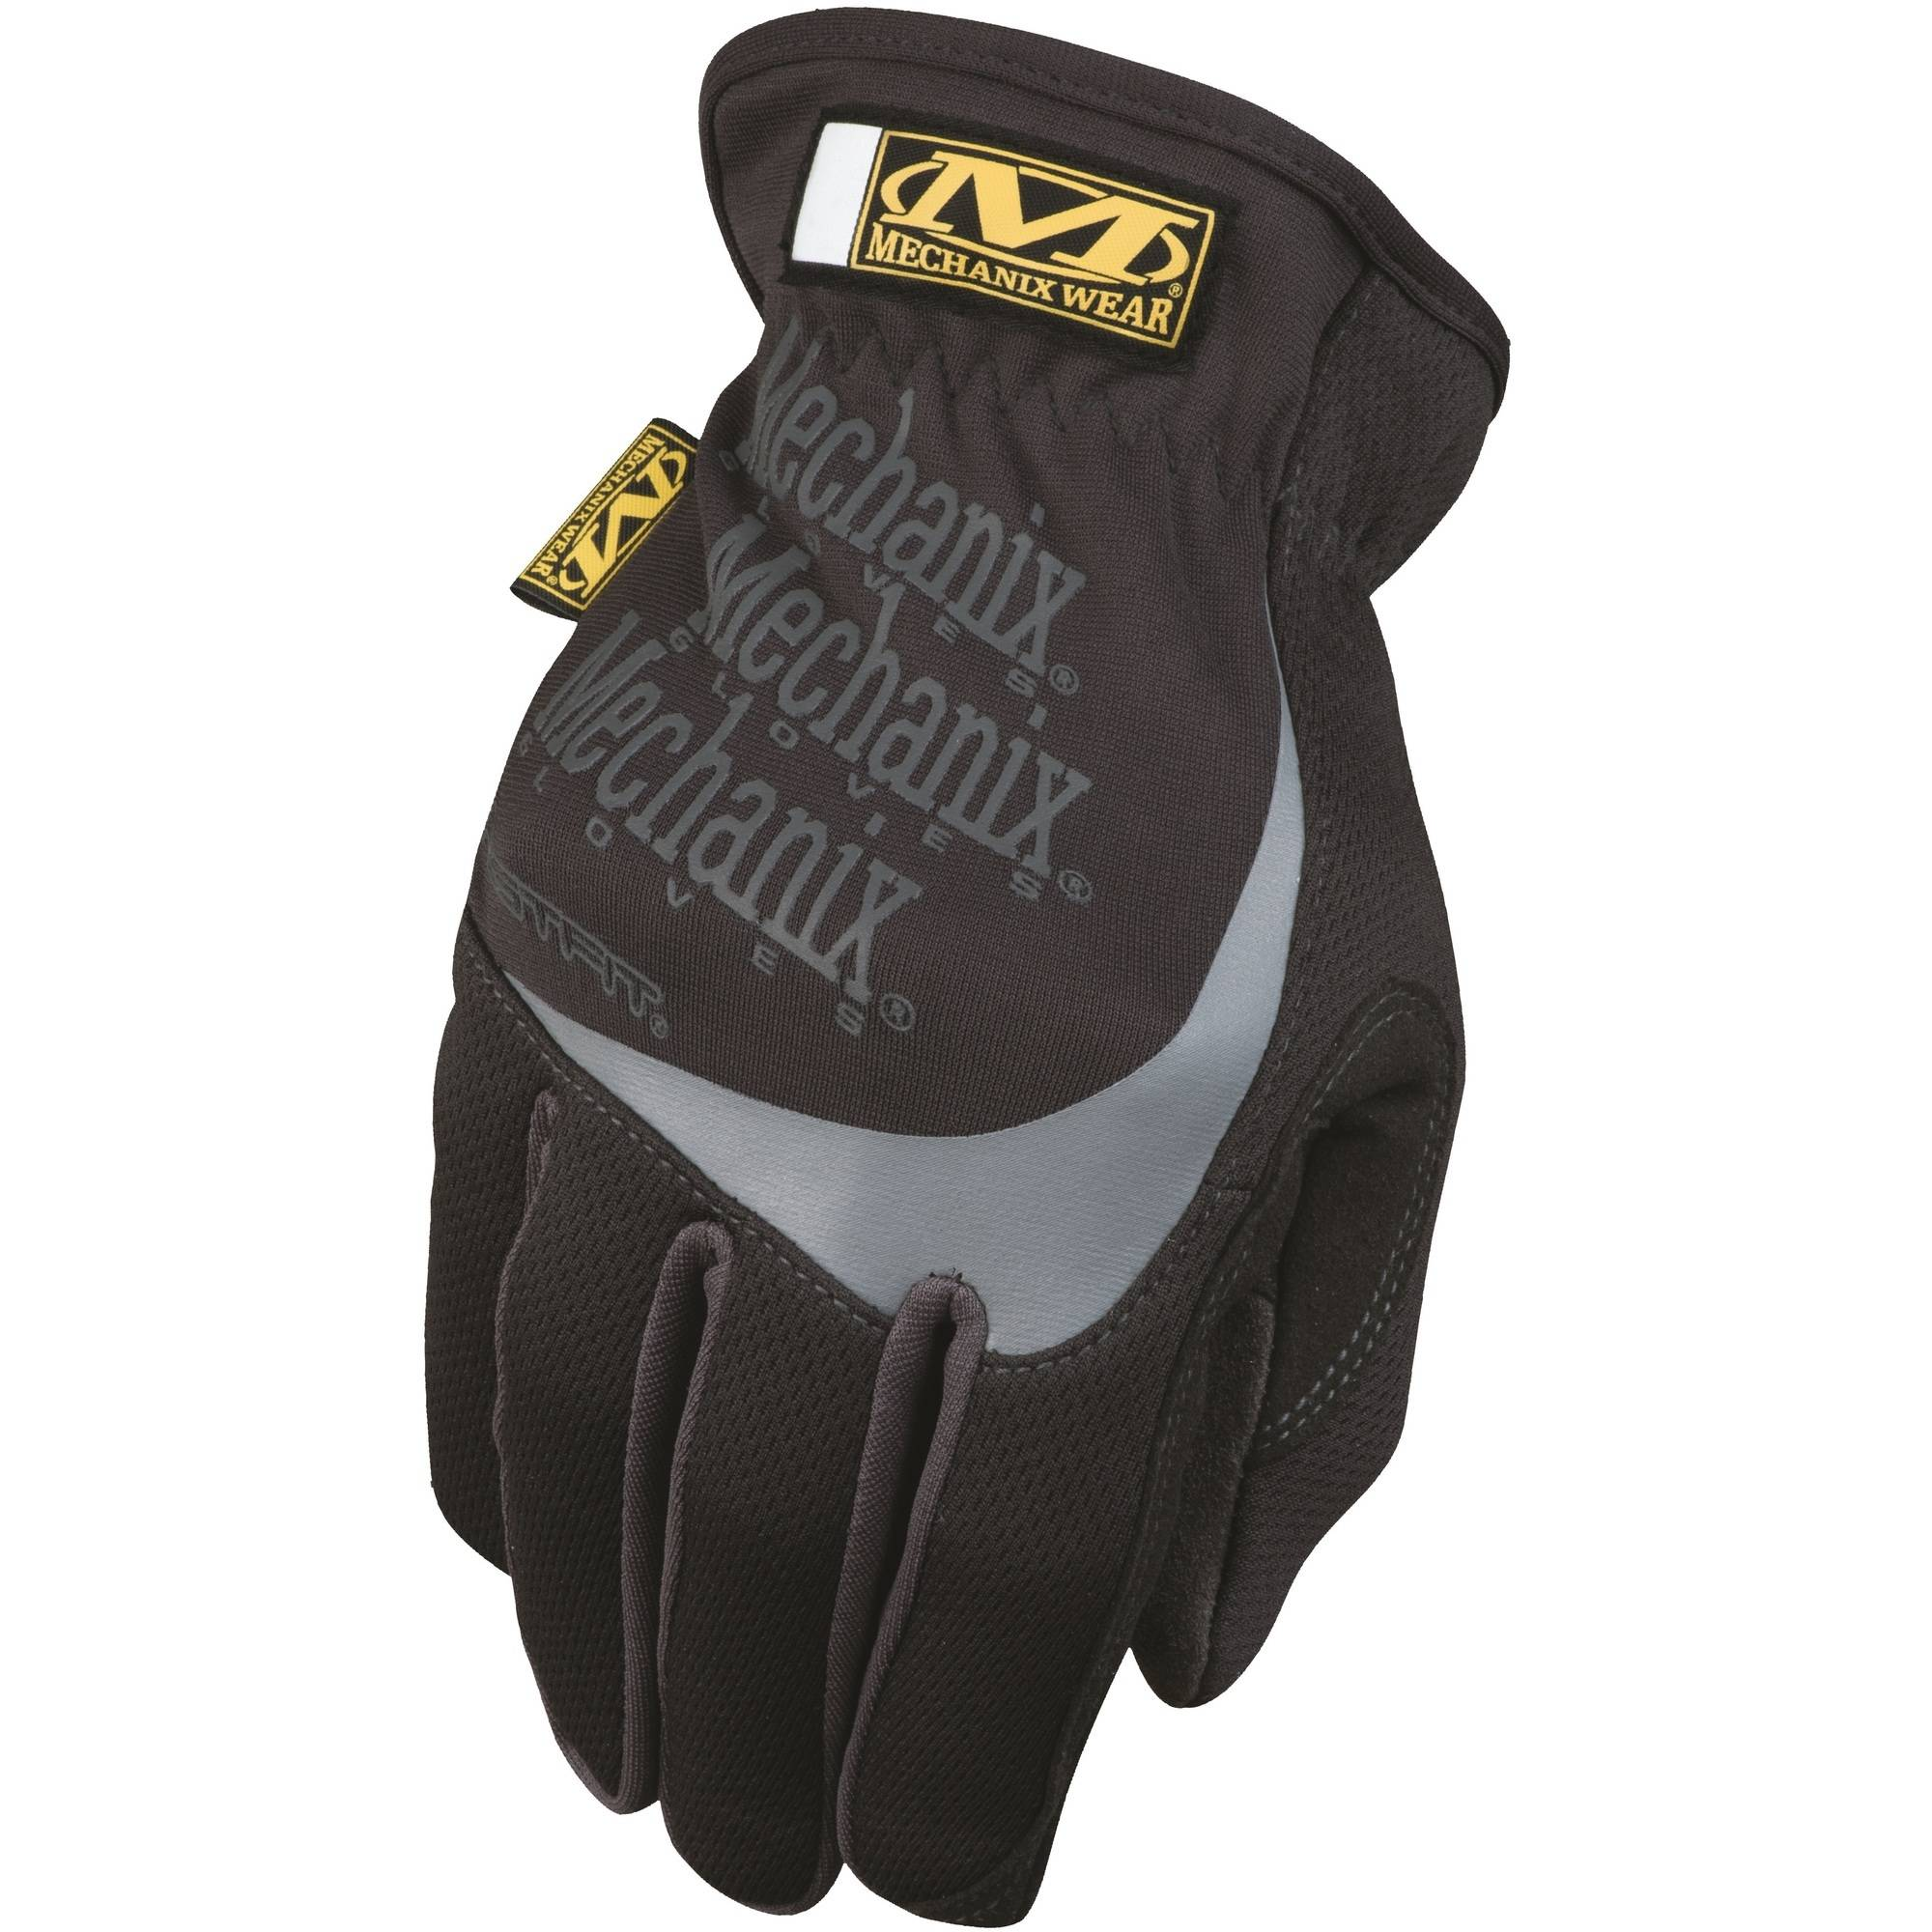 Motorcycle gloves bangalore - Mechanix Wear Fastfit Glove Black Size Medium